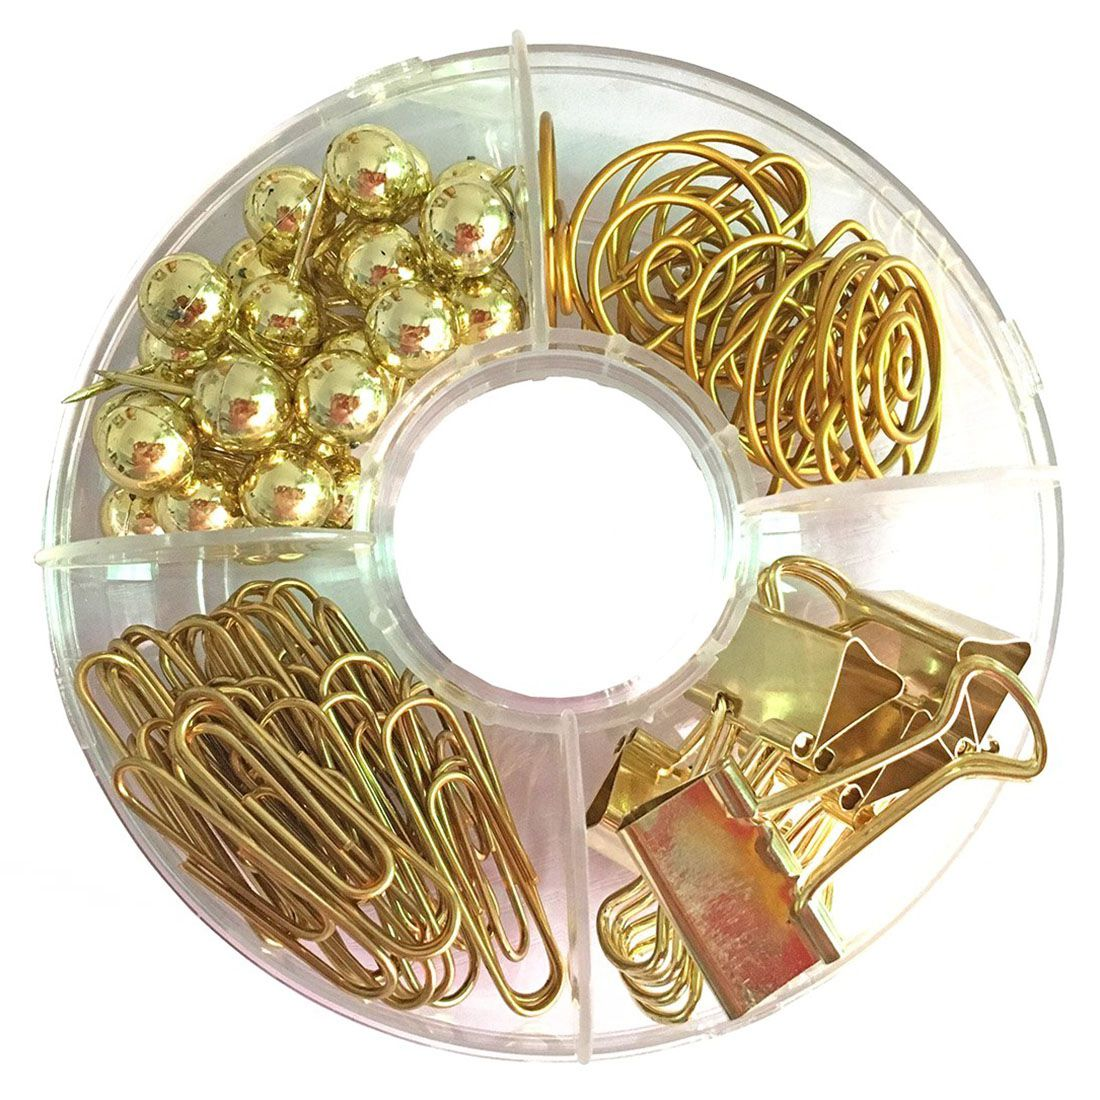 65 PCS Golden Paper Clips Set,Multi-Kind Push-Pin Map Tacks Long Tail Clip Paper Clip Binder Pin Clip for School,Home Office канцелярские кнопки drawing pin creative office 136